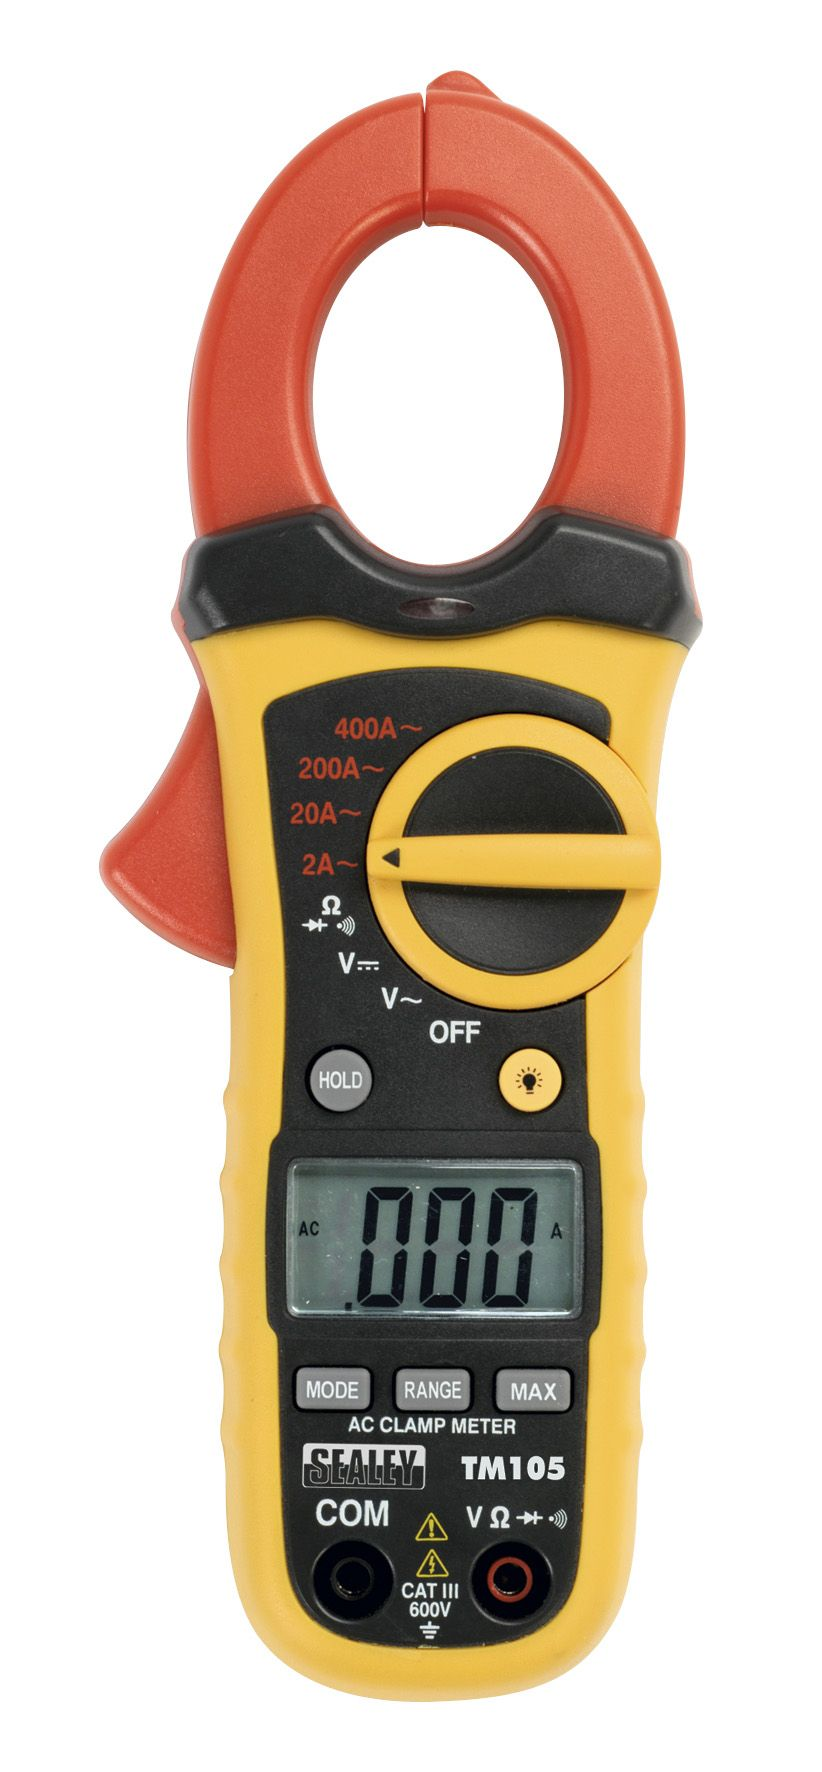 Sealey Professional Auto-Ranging Digital Clamp Meter NCVD - 6 Function